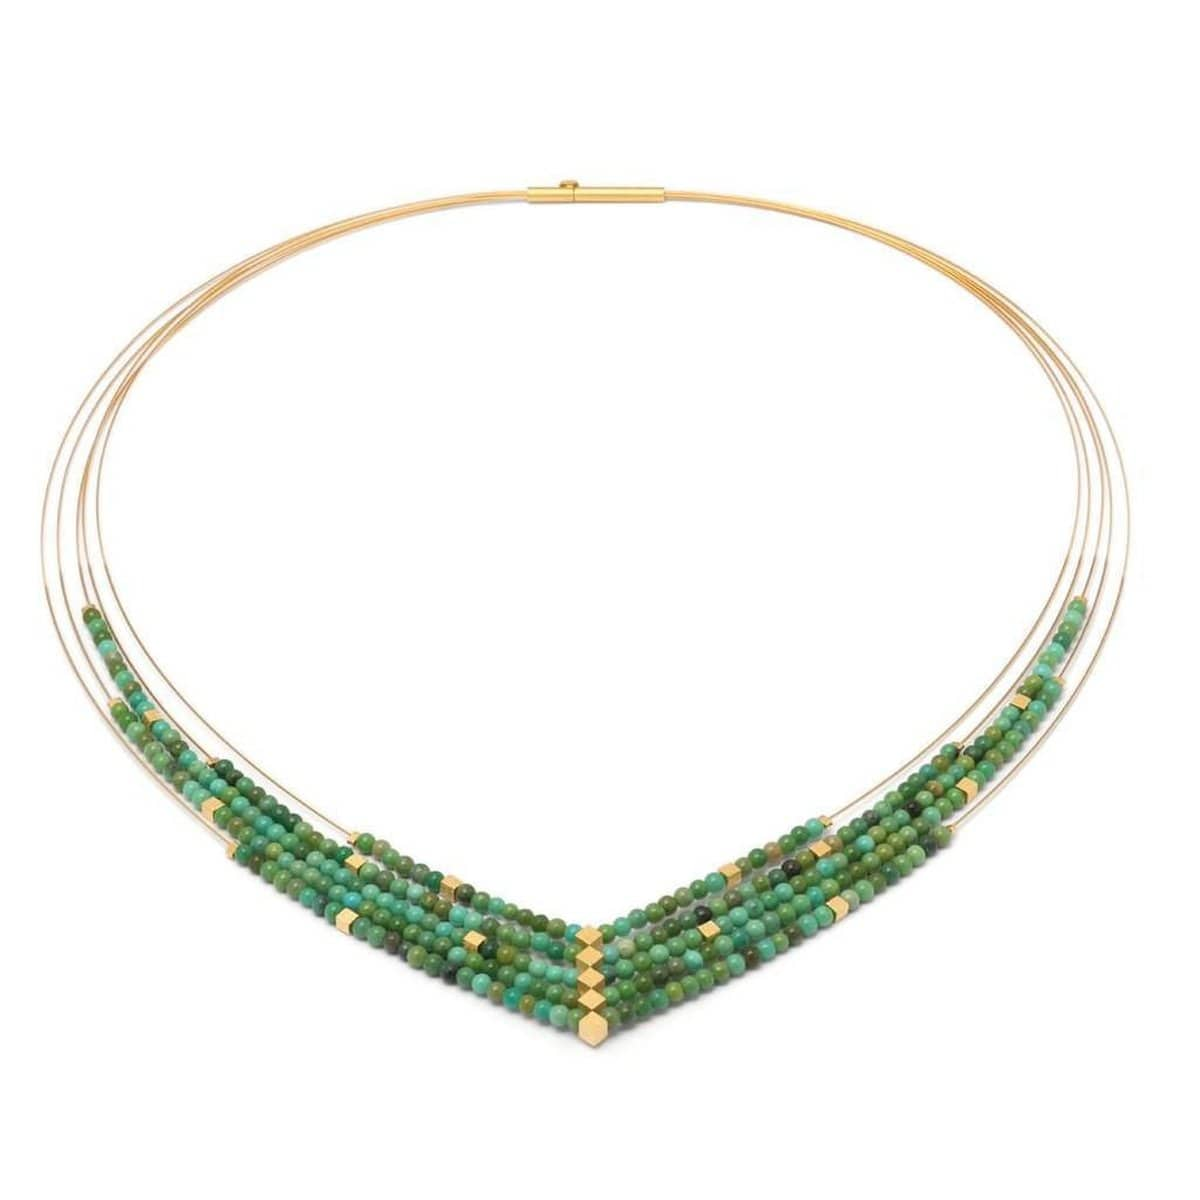 Valena Green Turquoise Necklace - 86021356